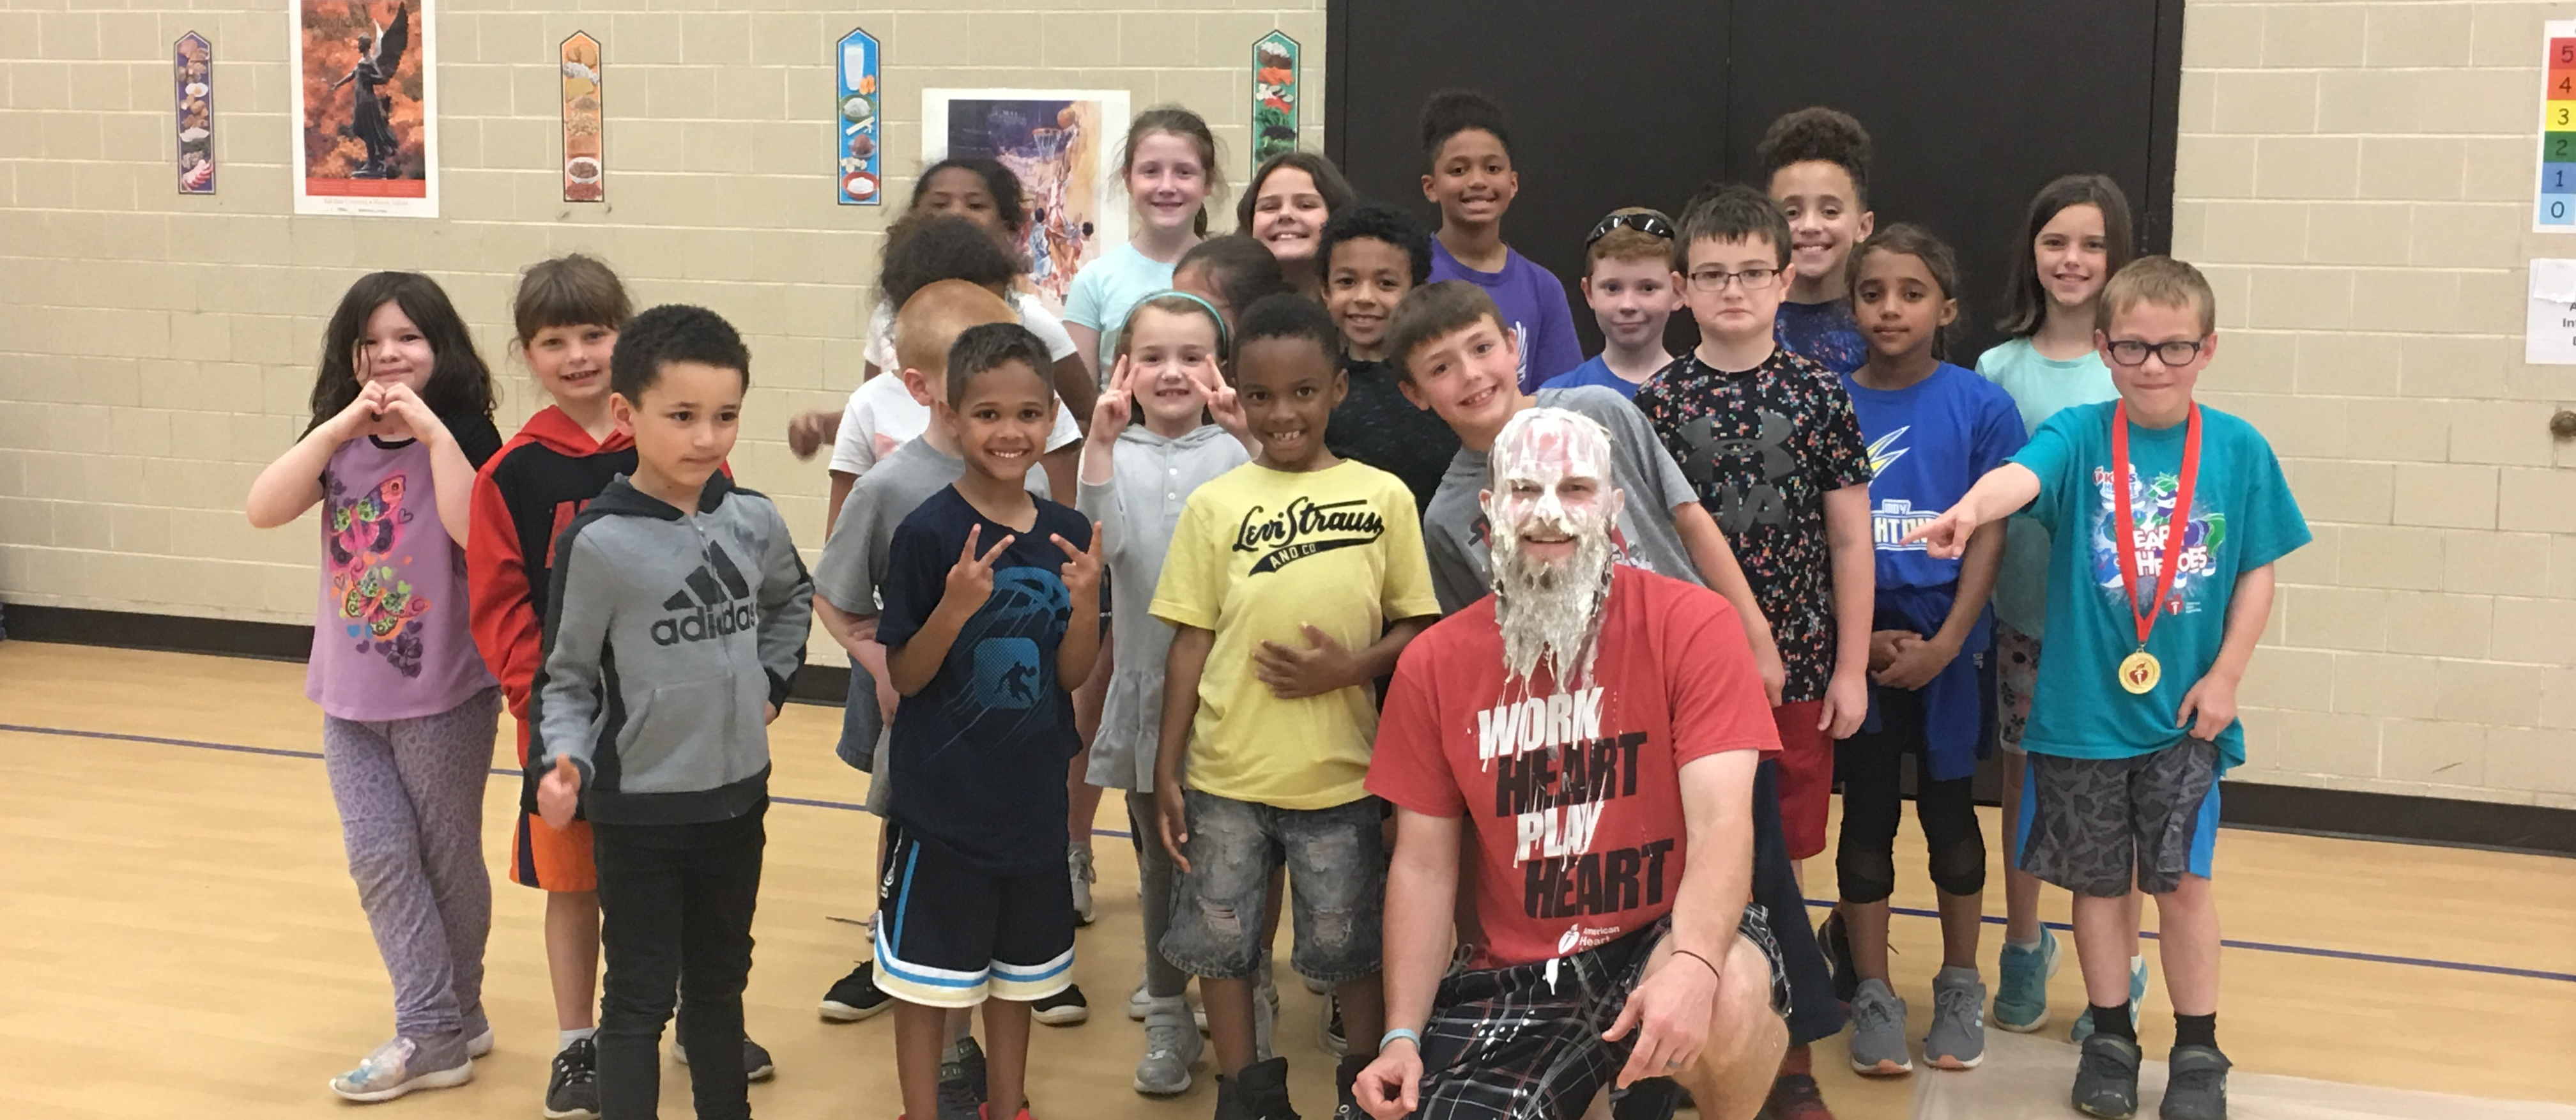 students around teacher that just got a pie in the face